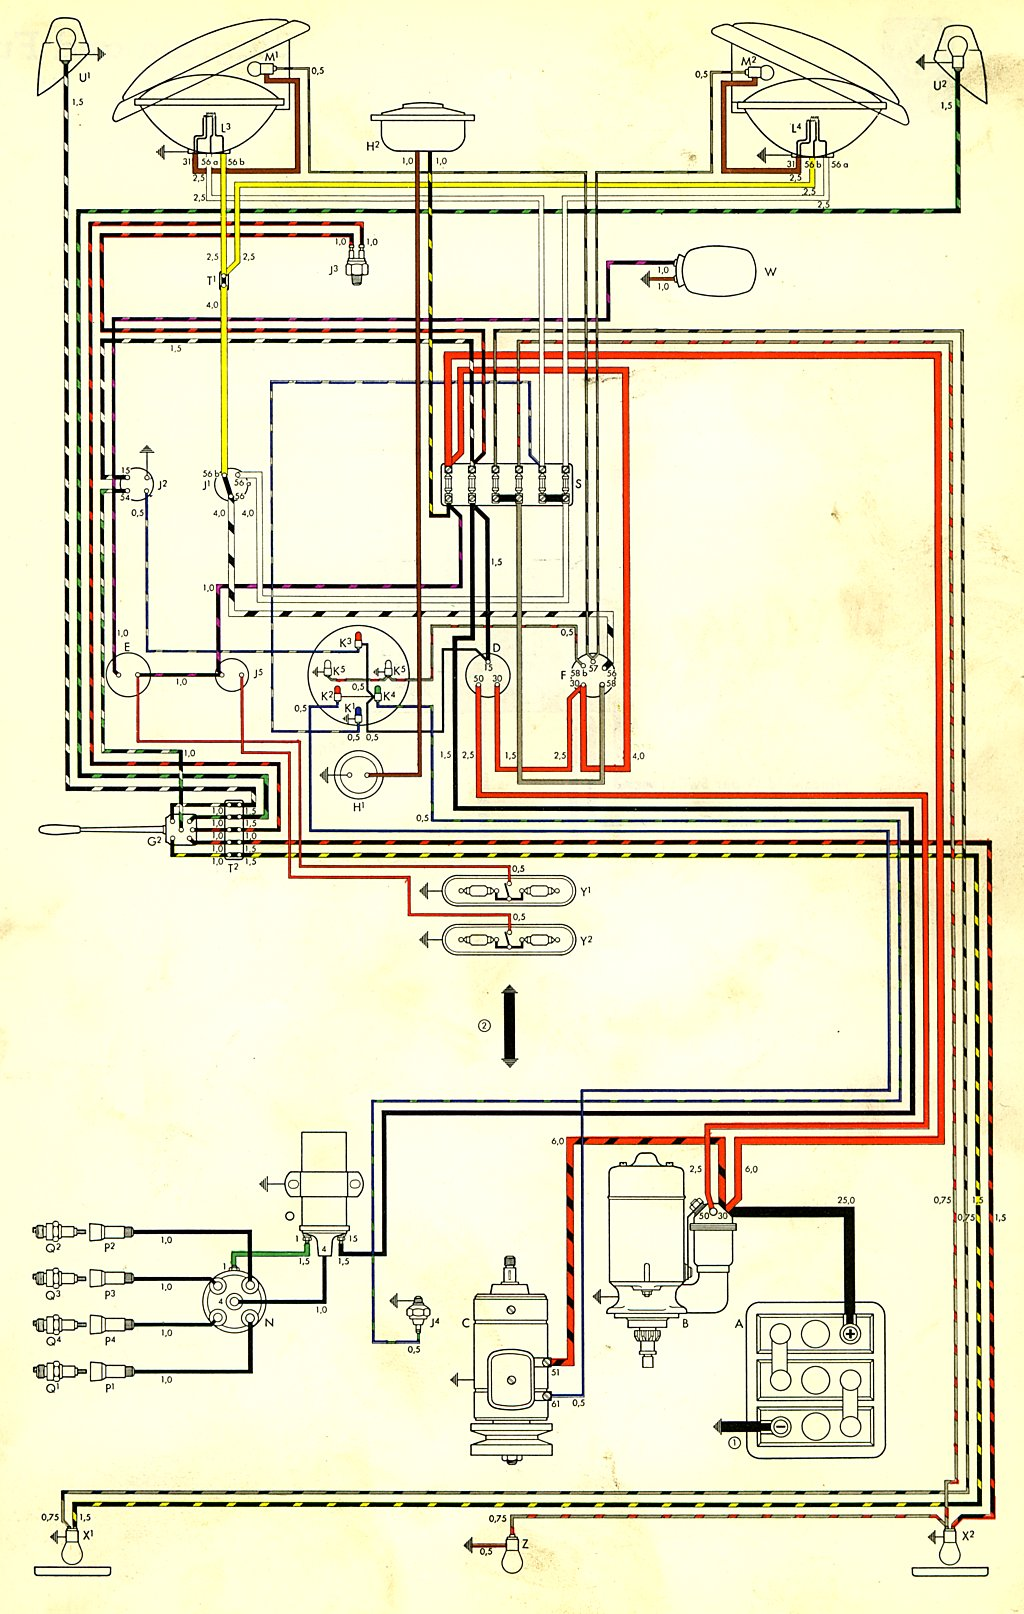 bus_59_USA vw bus wiring diagram 1965 vw bus wiring diagram \u2022 wiring diagrams Chevy Windshield Wiper Motor Wiring Diagram at bayanpartner.co